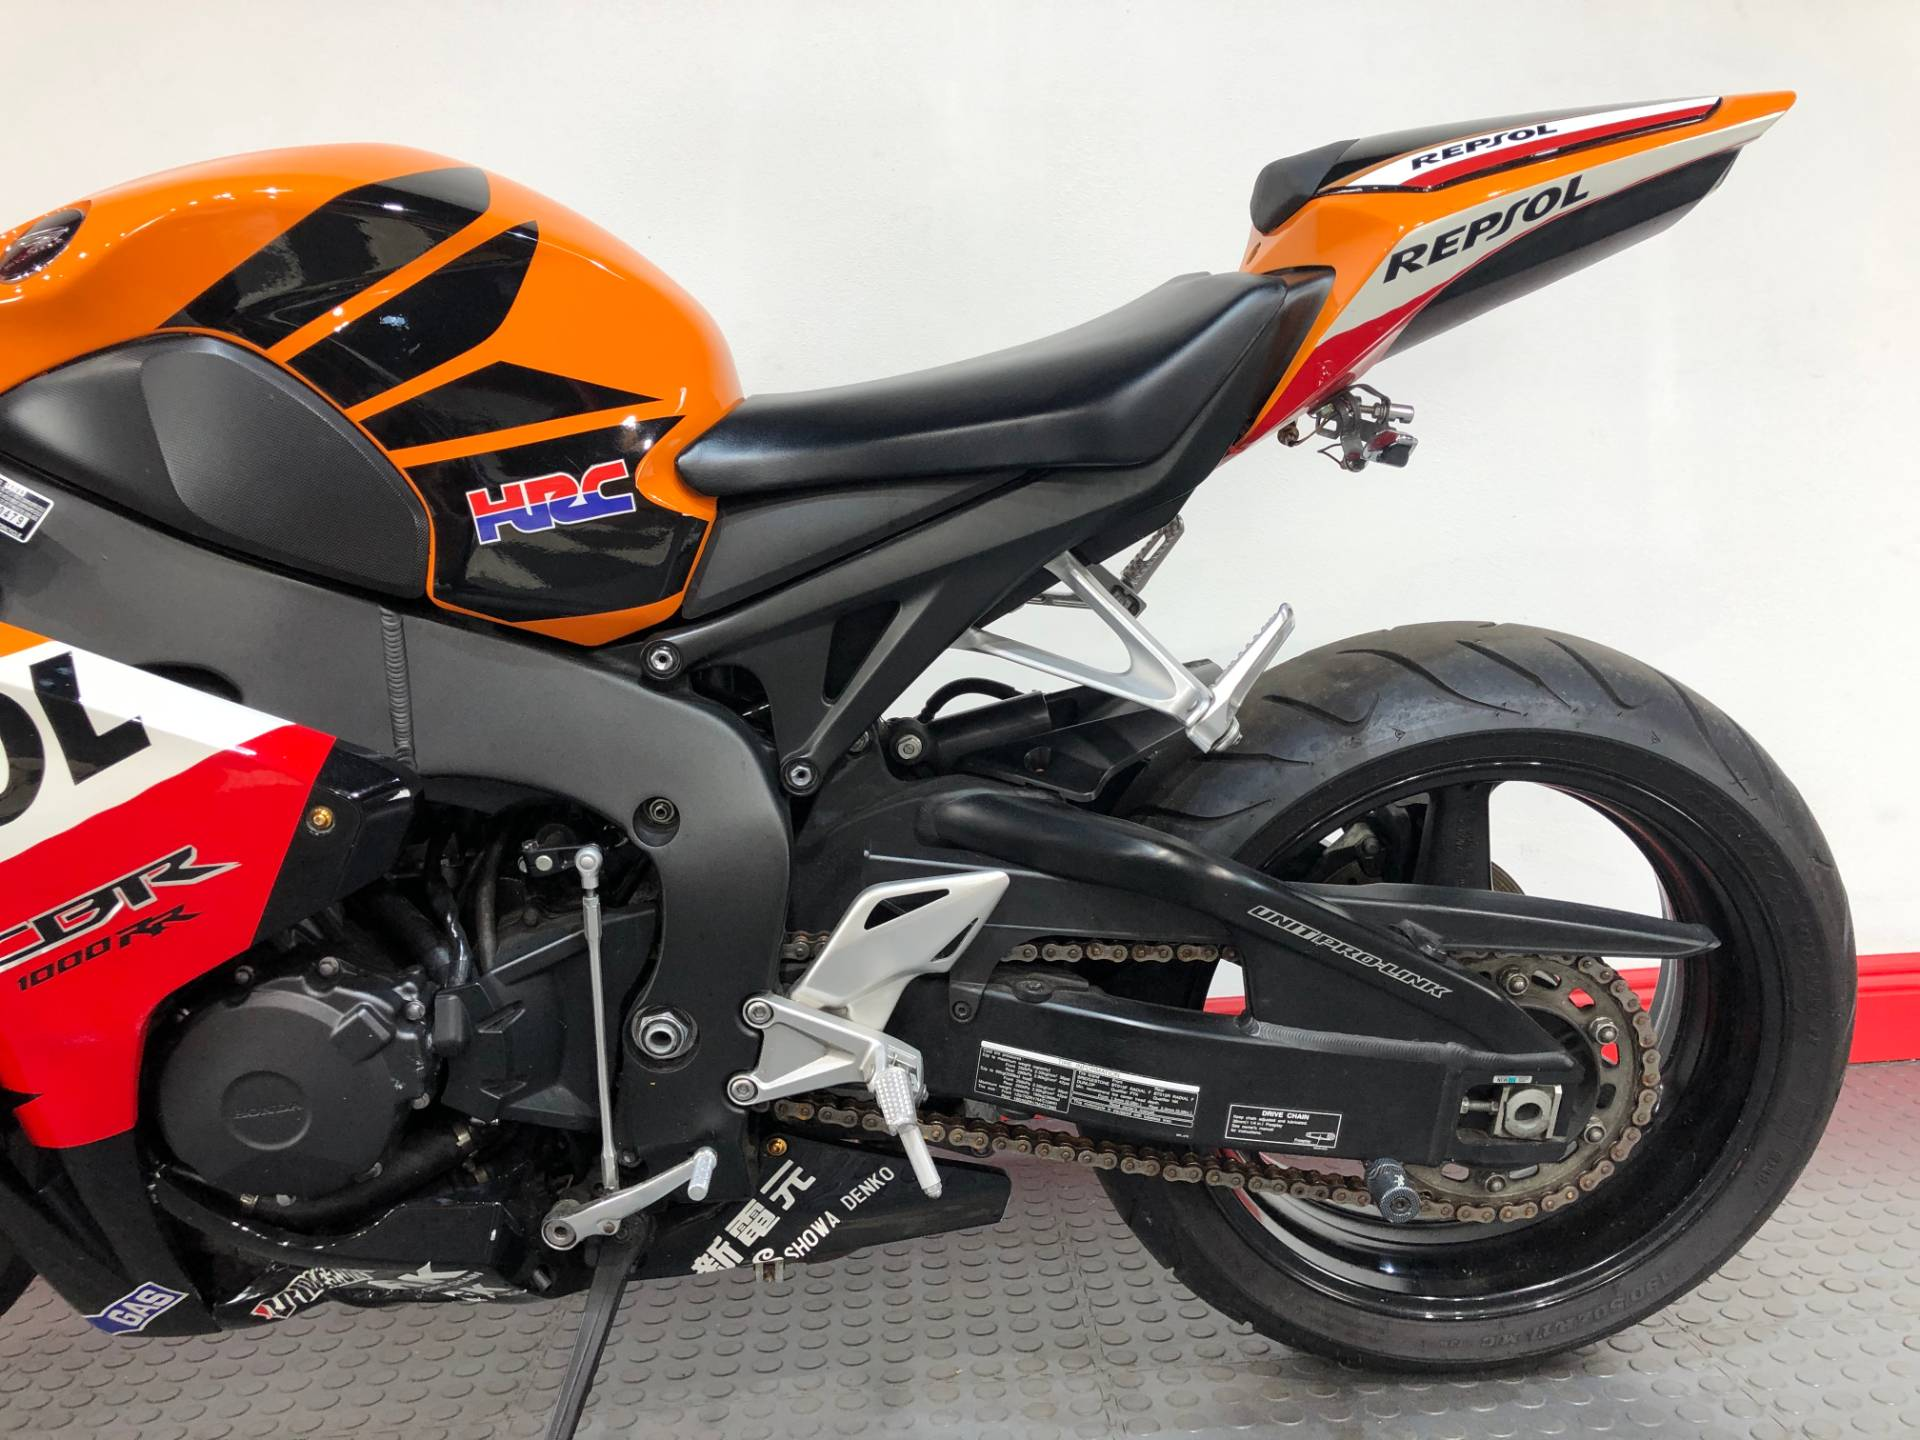 2010 Honda CBR®1000RR in Tampa, Florida - Photo 9